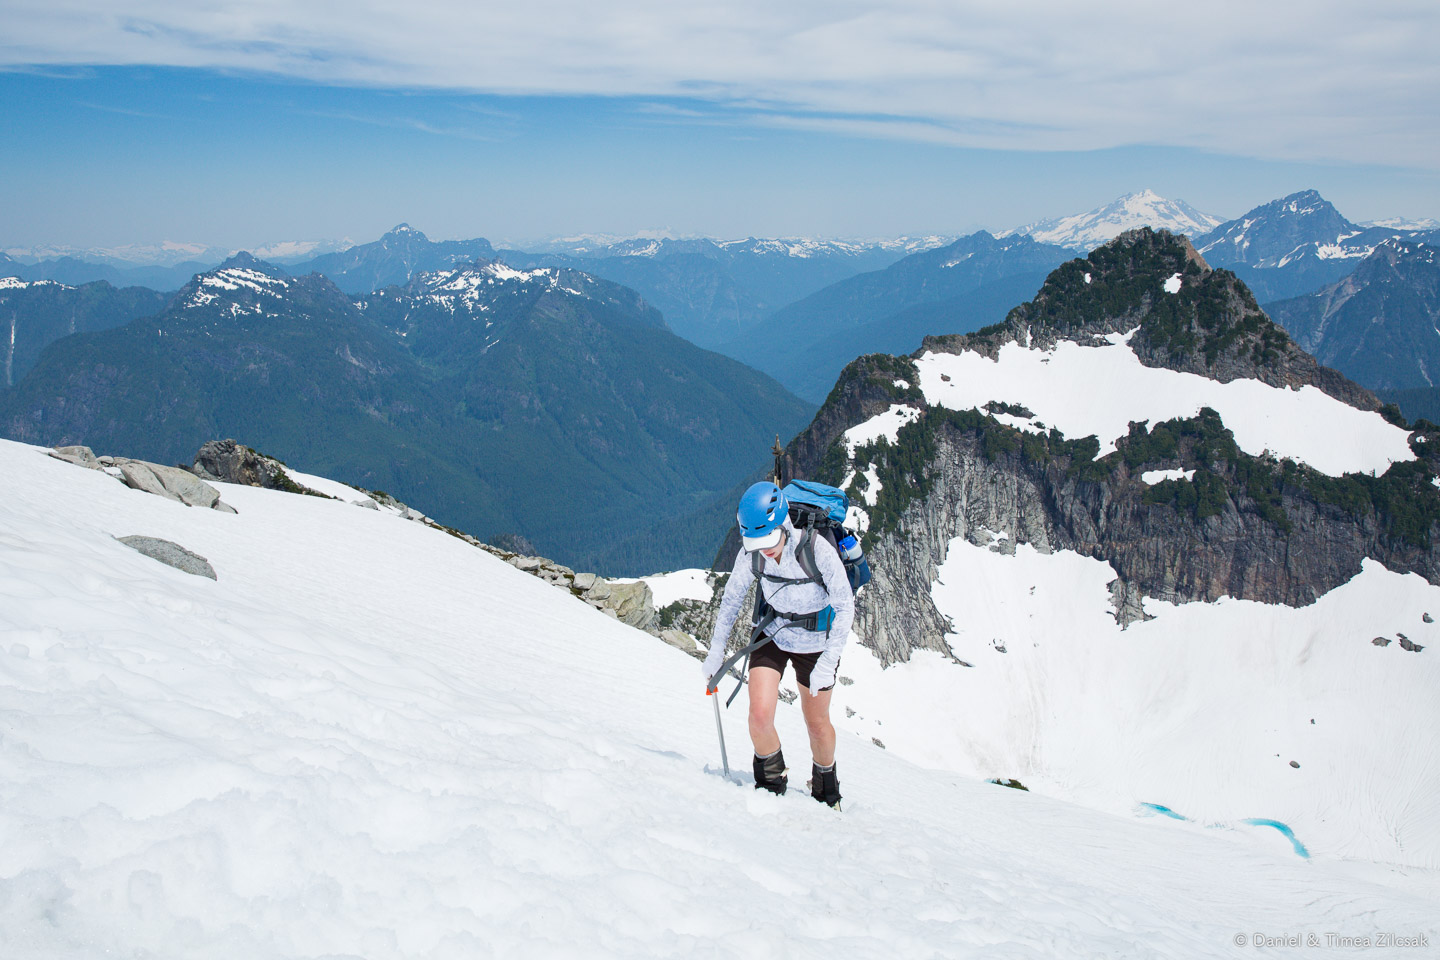 Final steps on the snow field